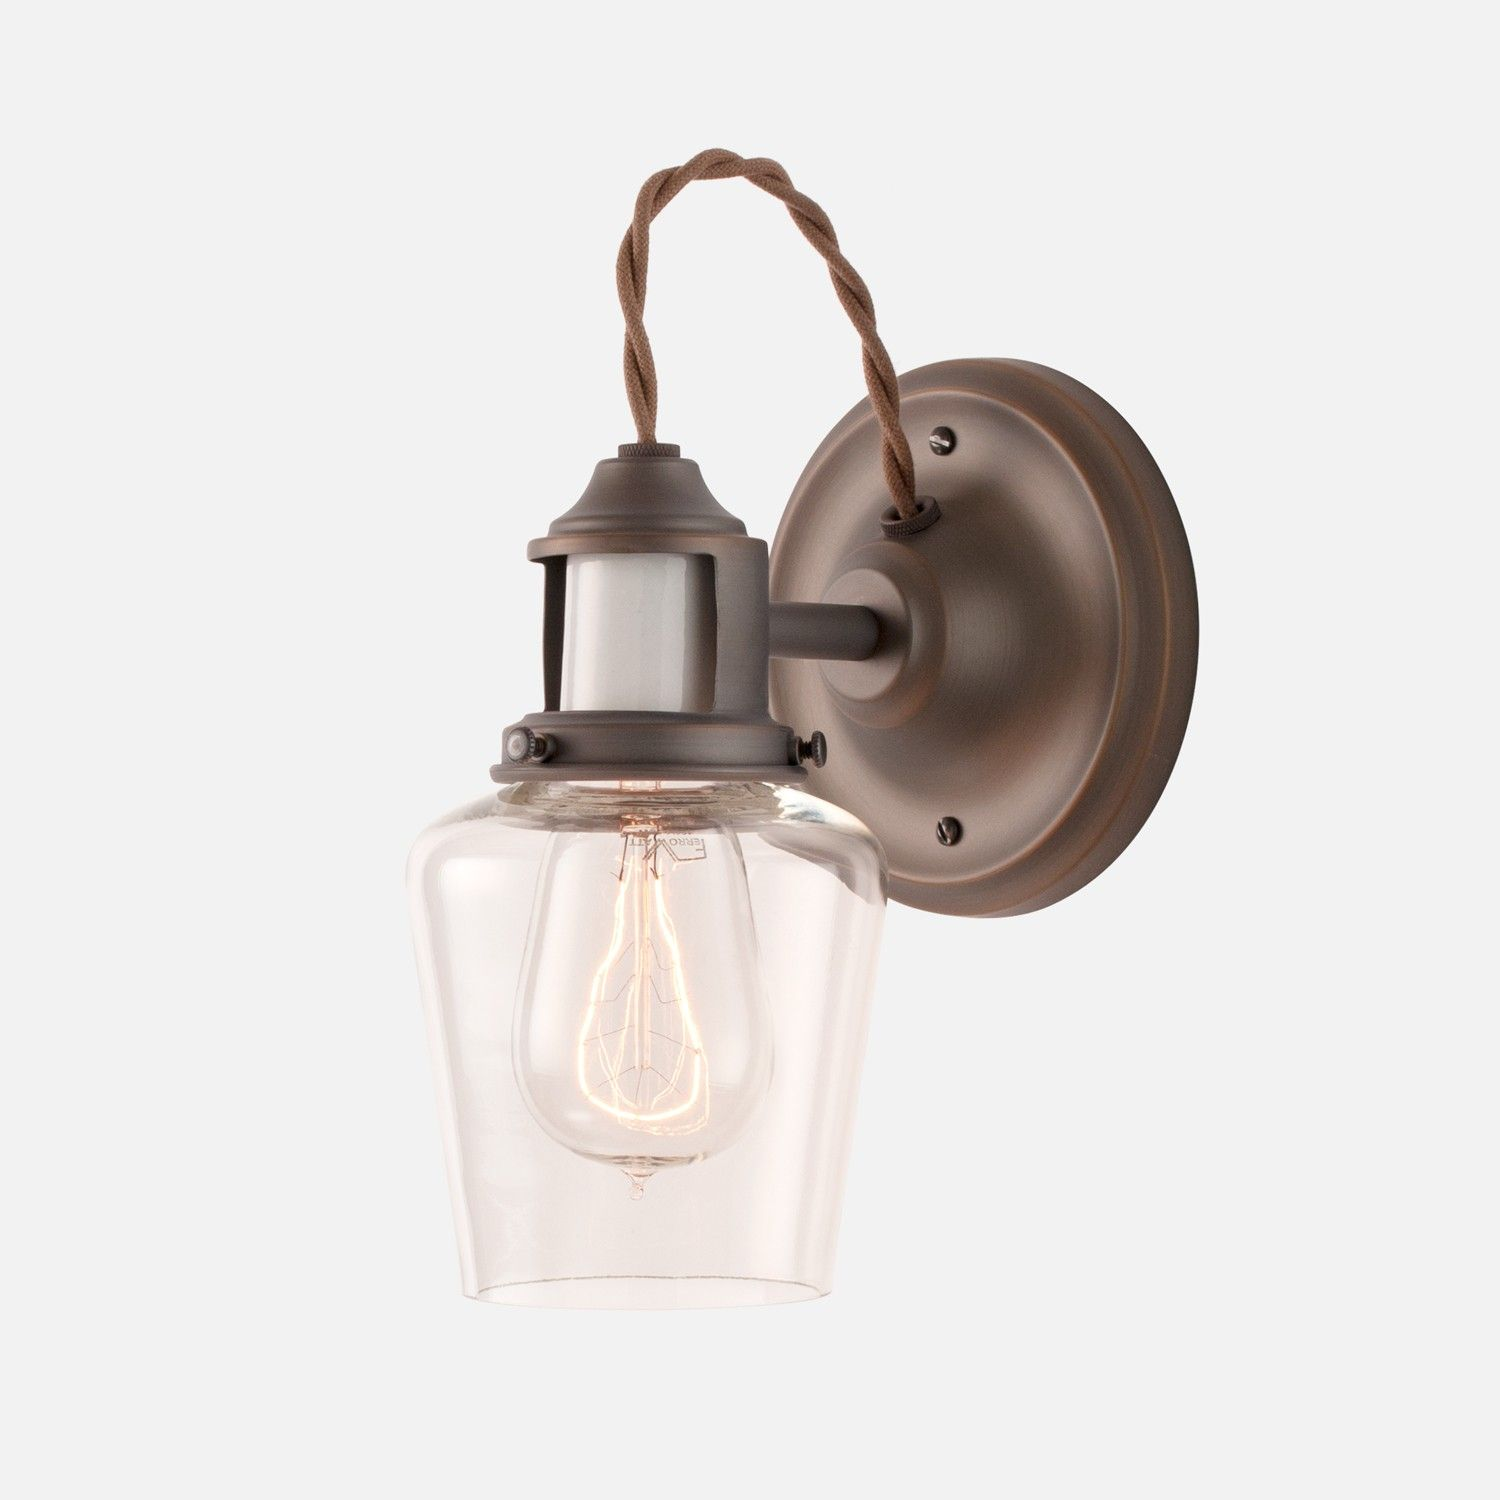 Keene Wall Sconce Light Fixture Schoolhouse Electric